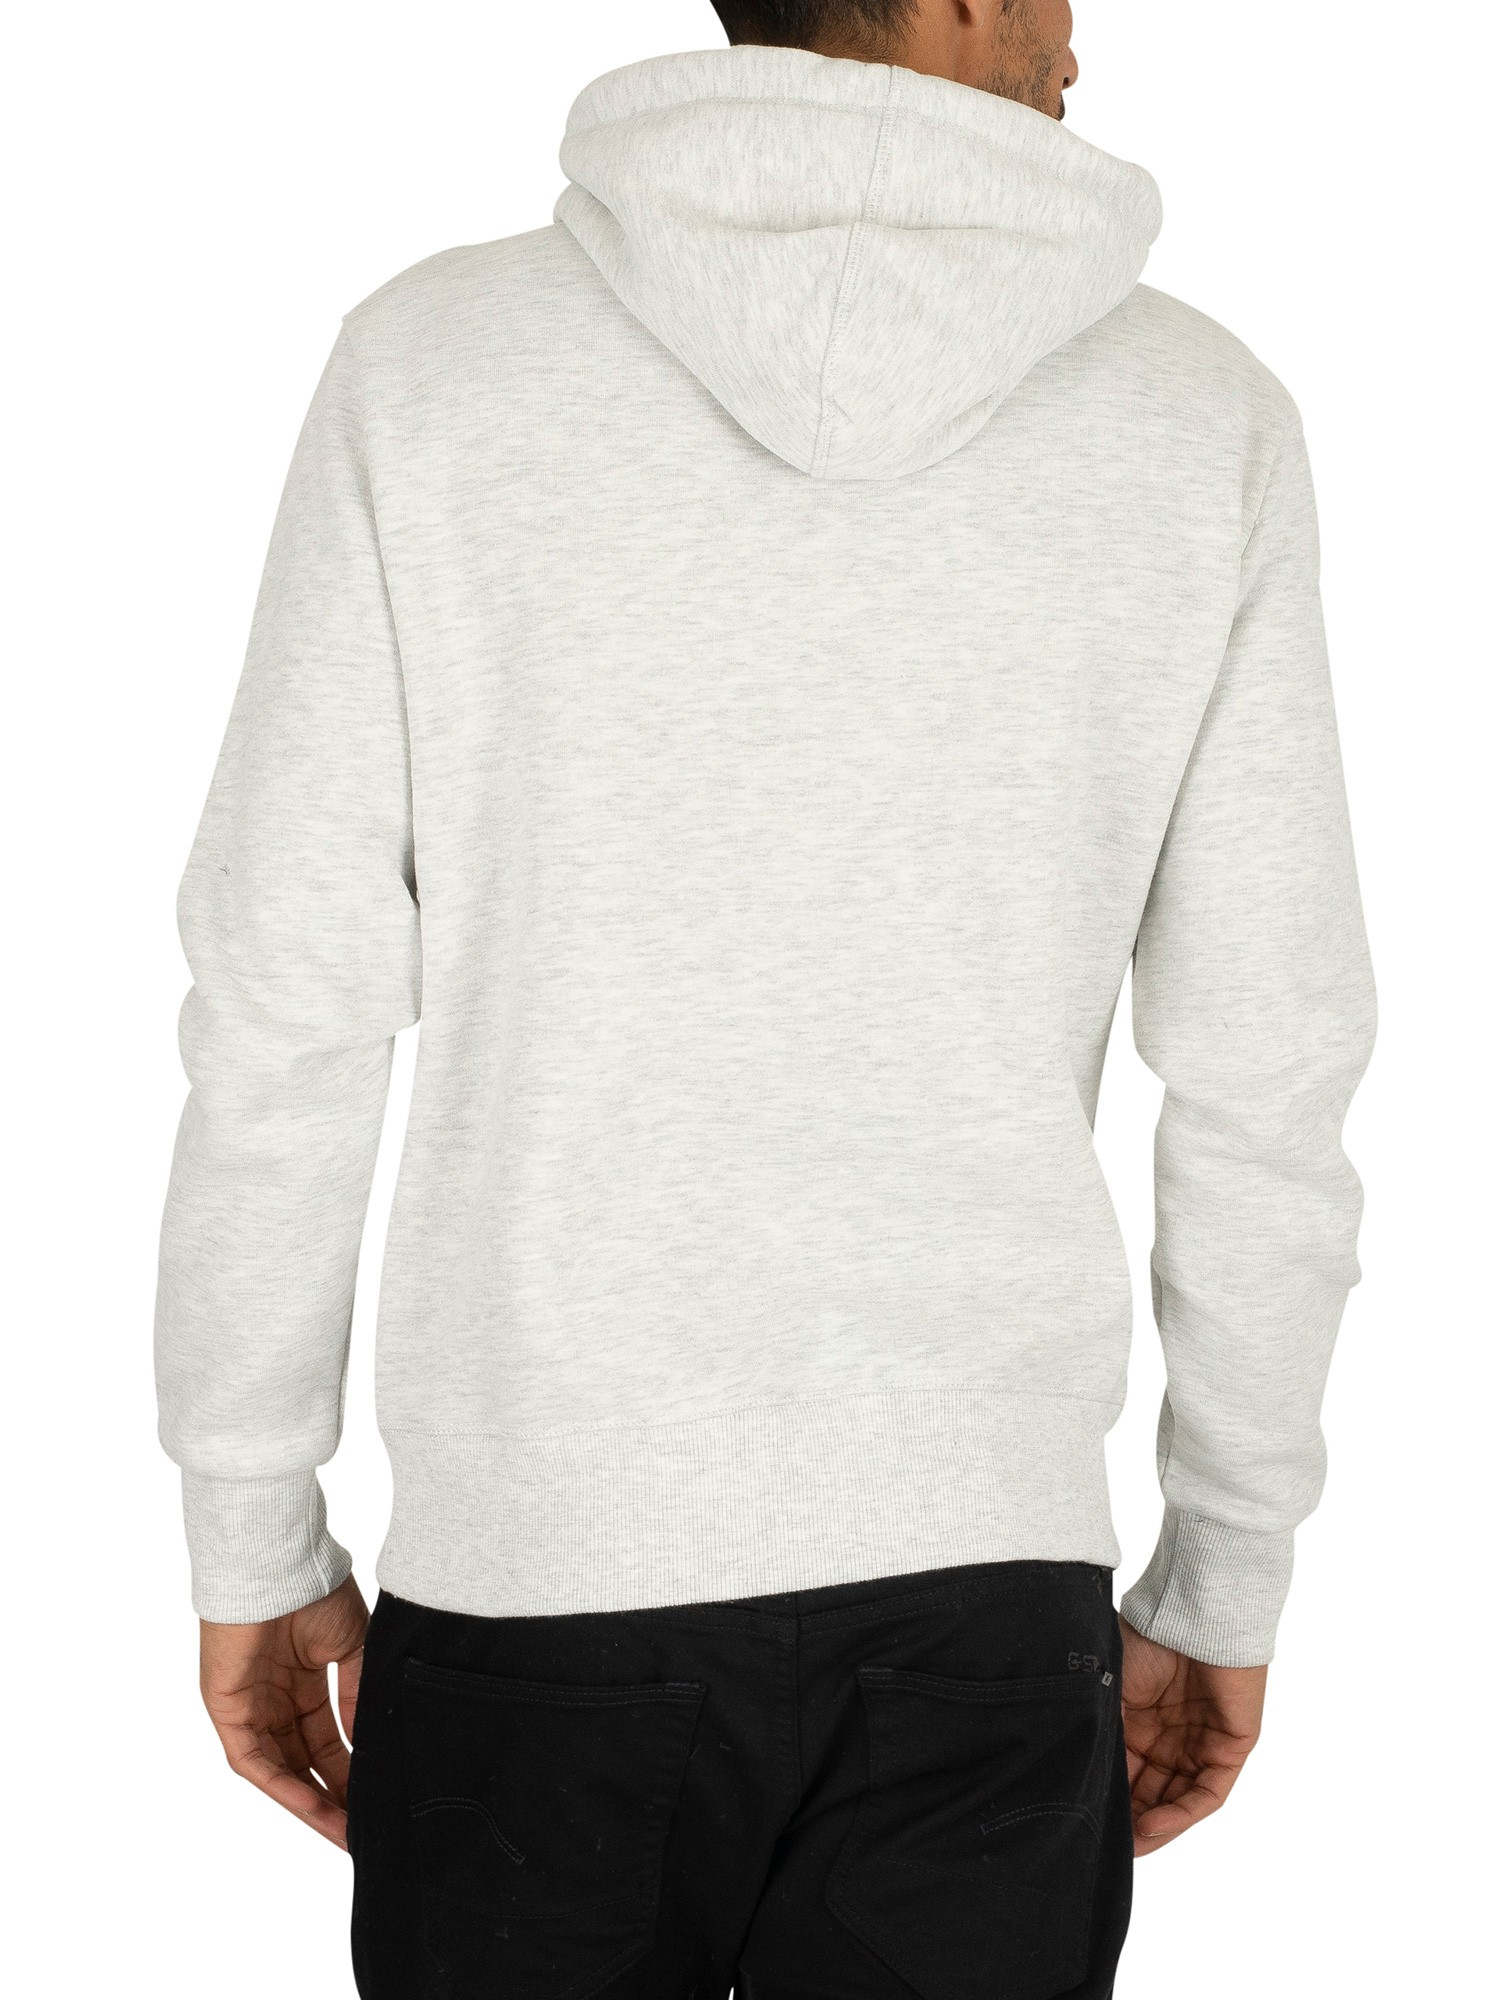 Superdry Sweat Shop Duo Pullover Hoodie - Ice Marl